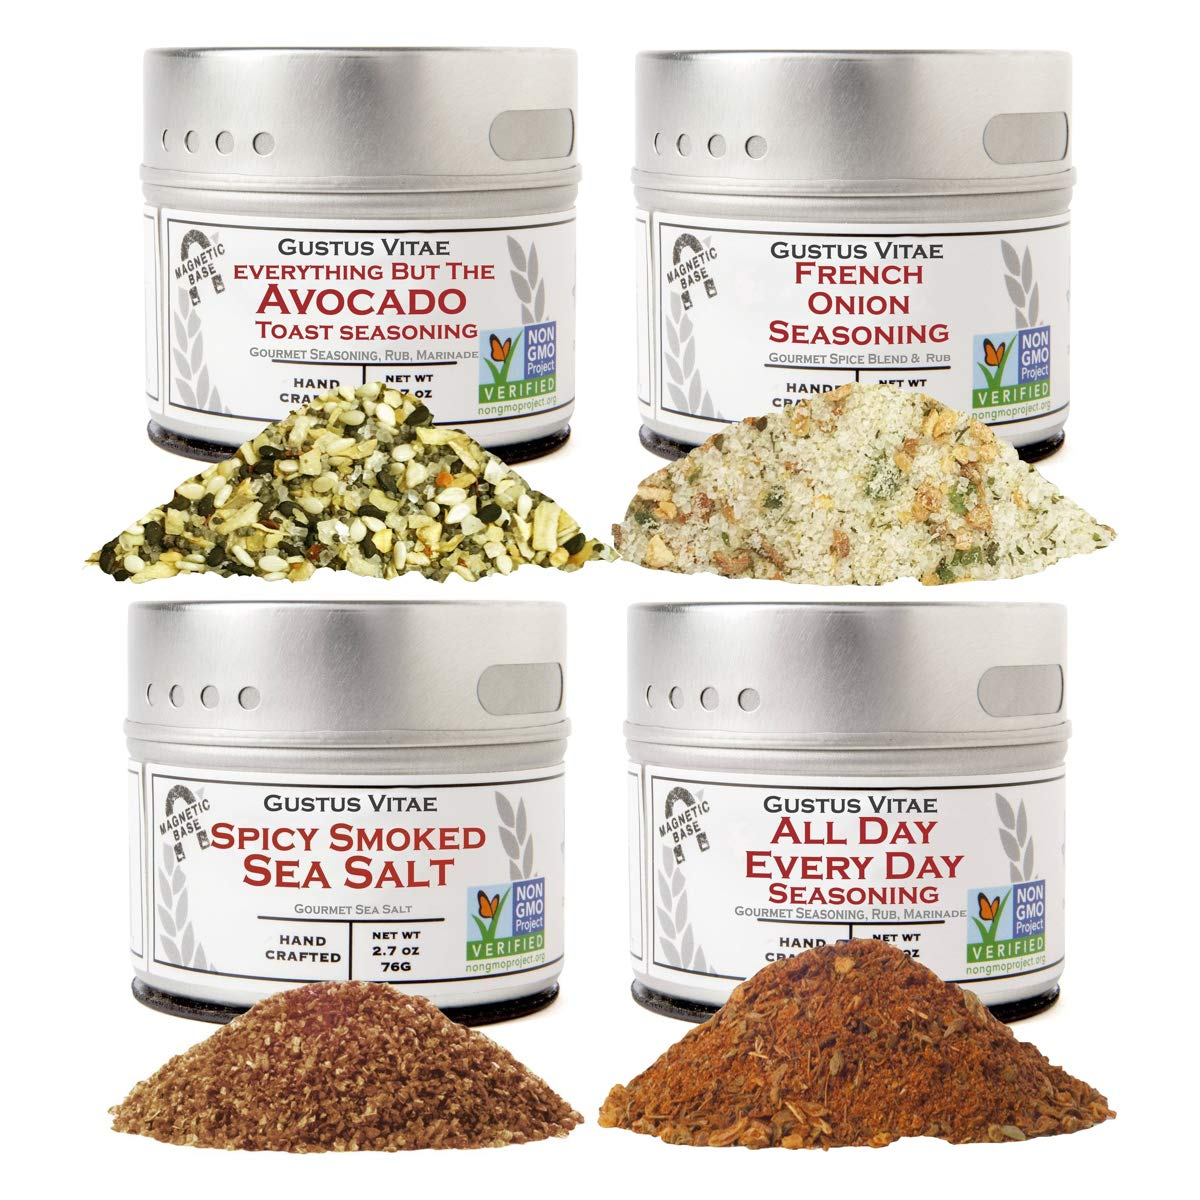 Home Chef Flavor Kit   Gourmet Spice Blends   Gustus Vitae   All Natural   Non GMO   Small Batch   Crafted With Care